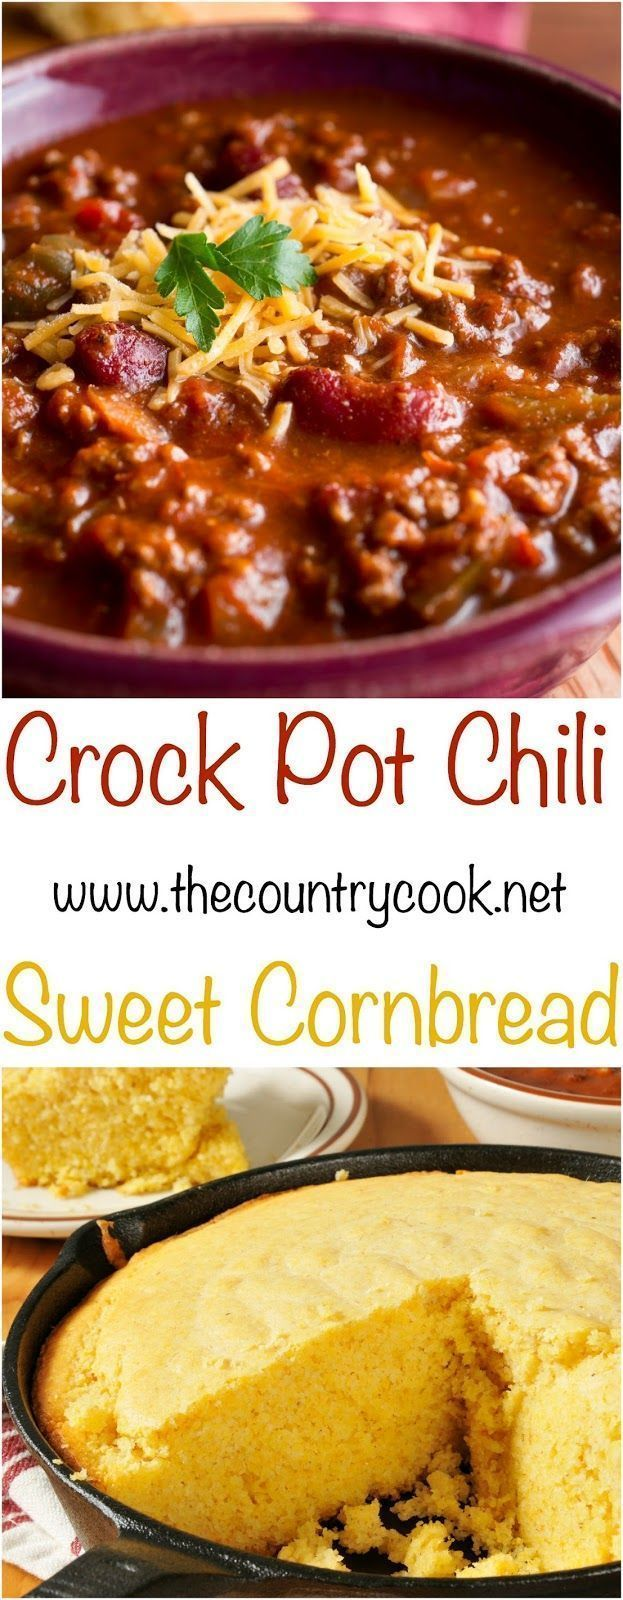 Crock Pot Chili recipe & Sweet Cornbread recipe from The Country Cook. The chili is so good because it cooks low and slow in the crockpot! #easy #recipes #slowcooker #crockpot #cornbread